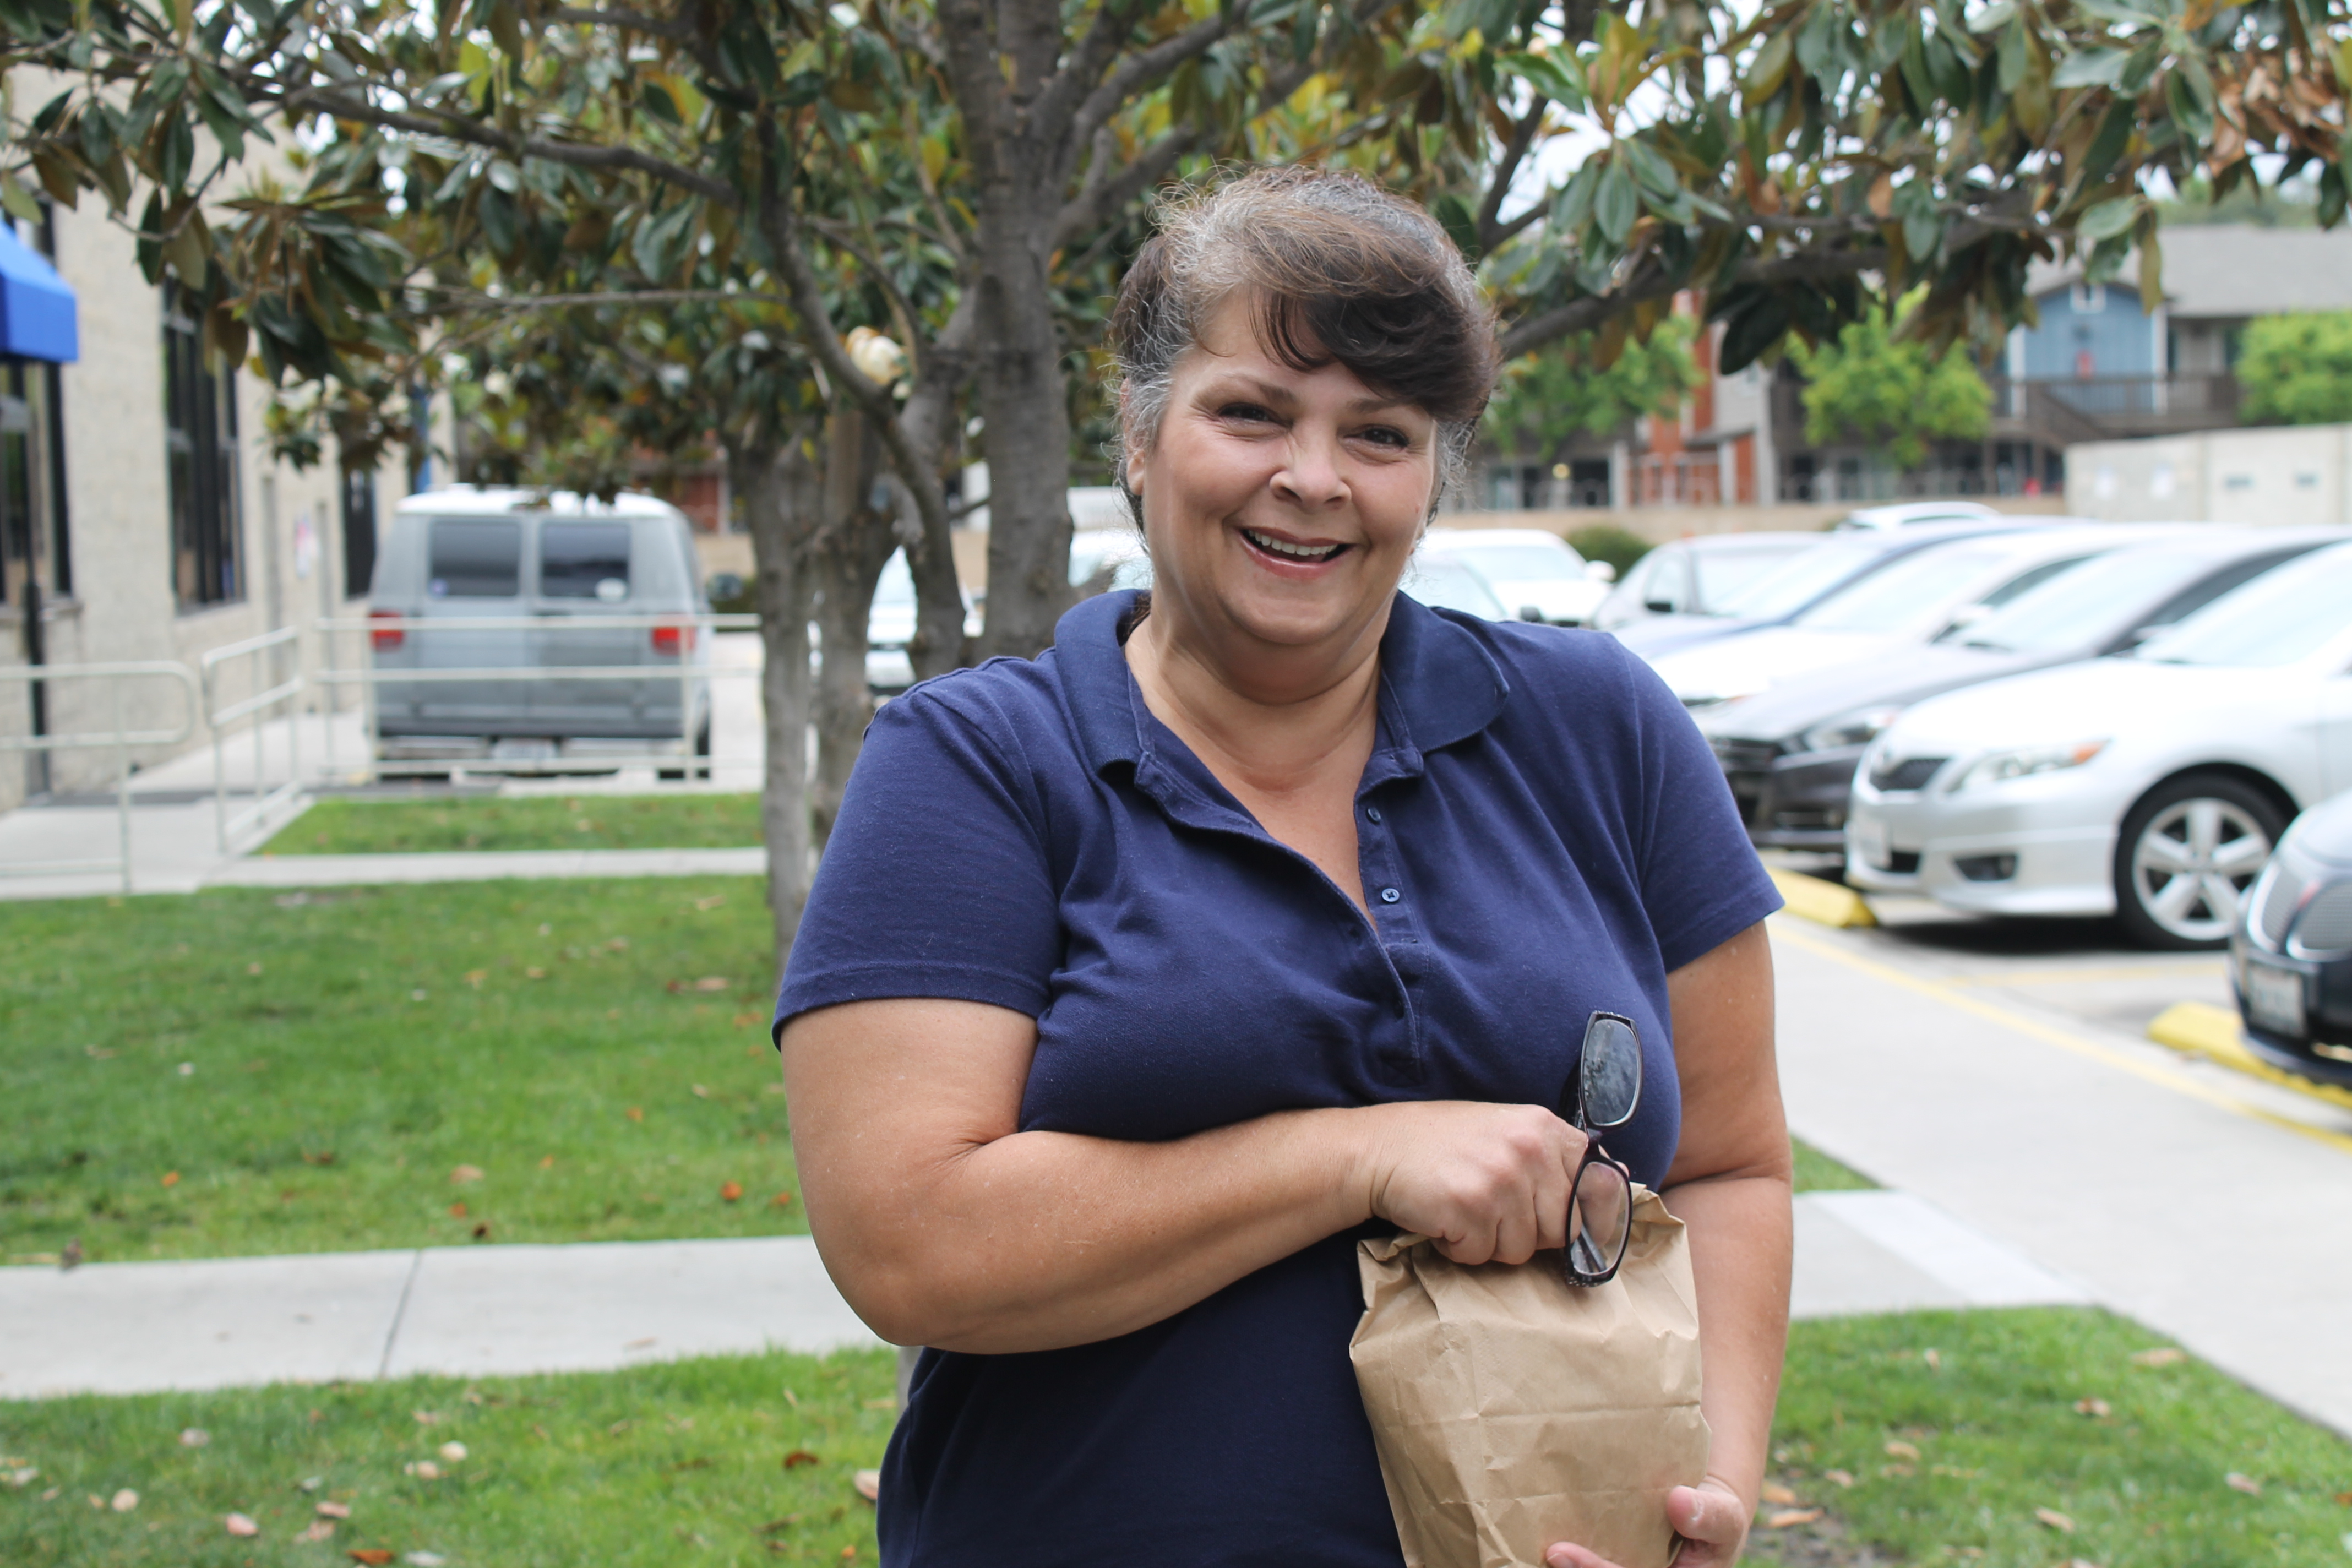 woman with sack lunch smiling